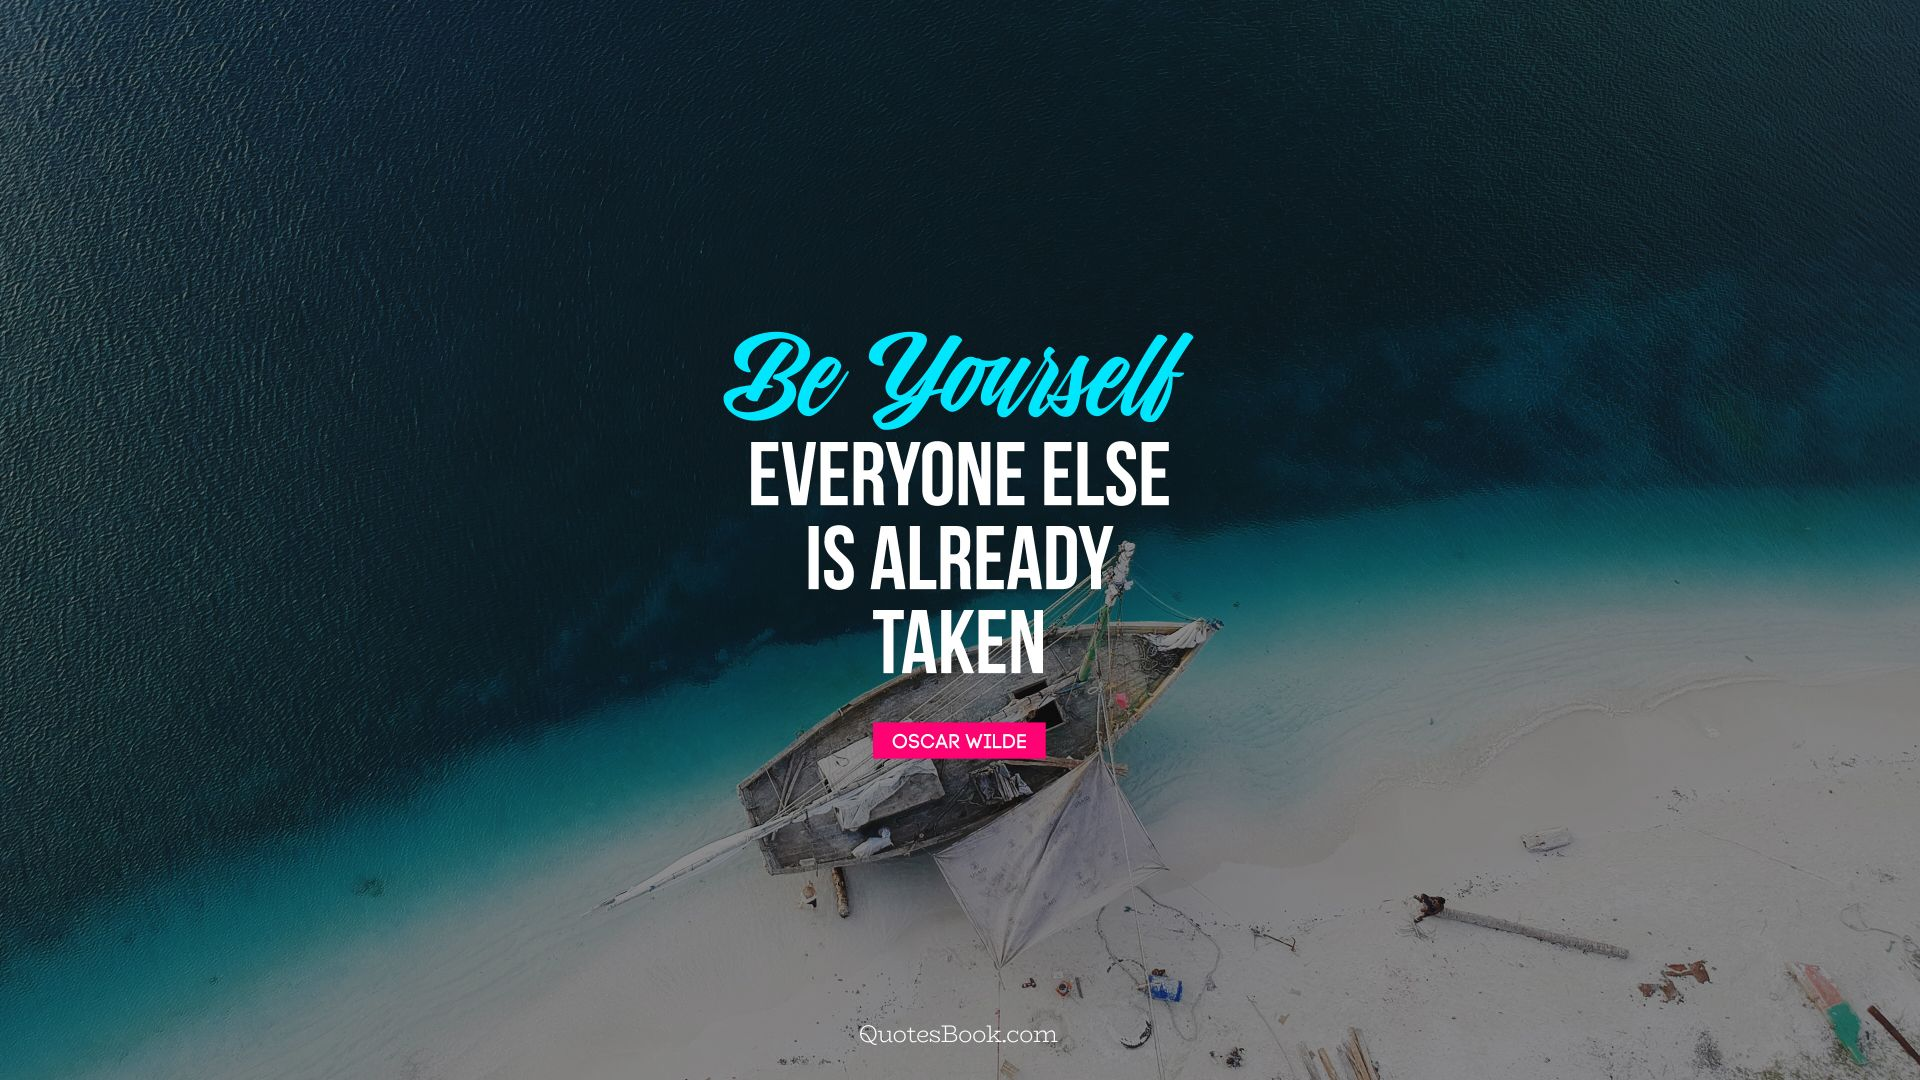 Be yourself; everyone else is already taken. - Quote by Oscar Wilde